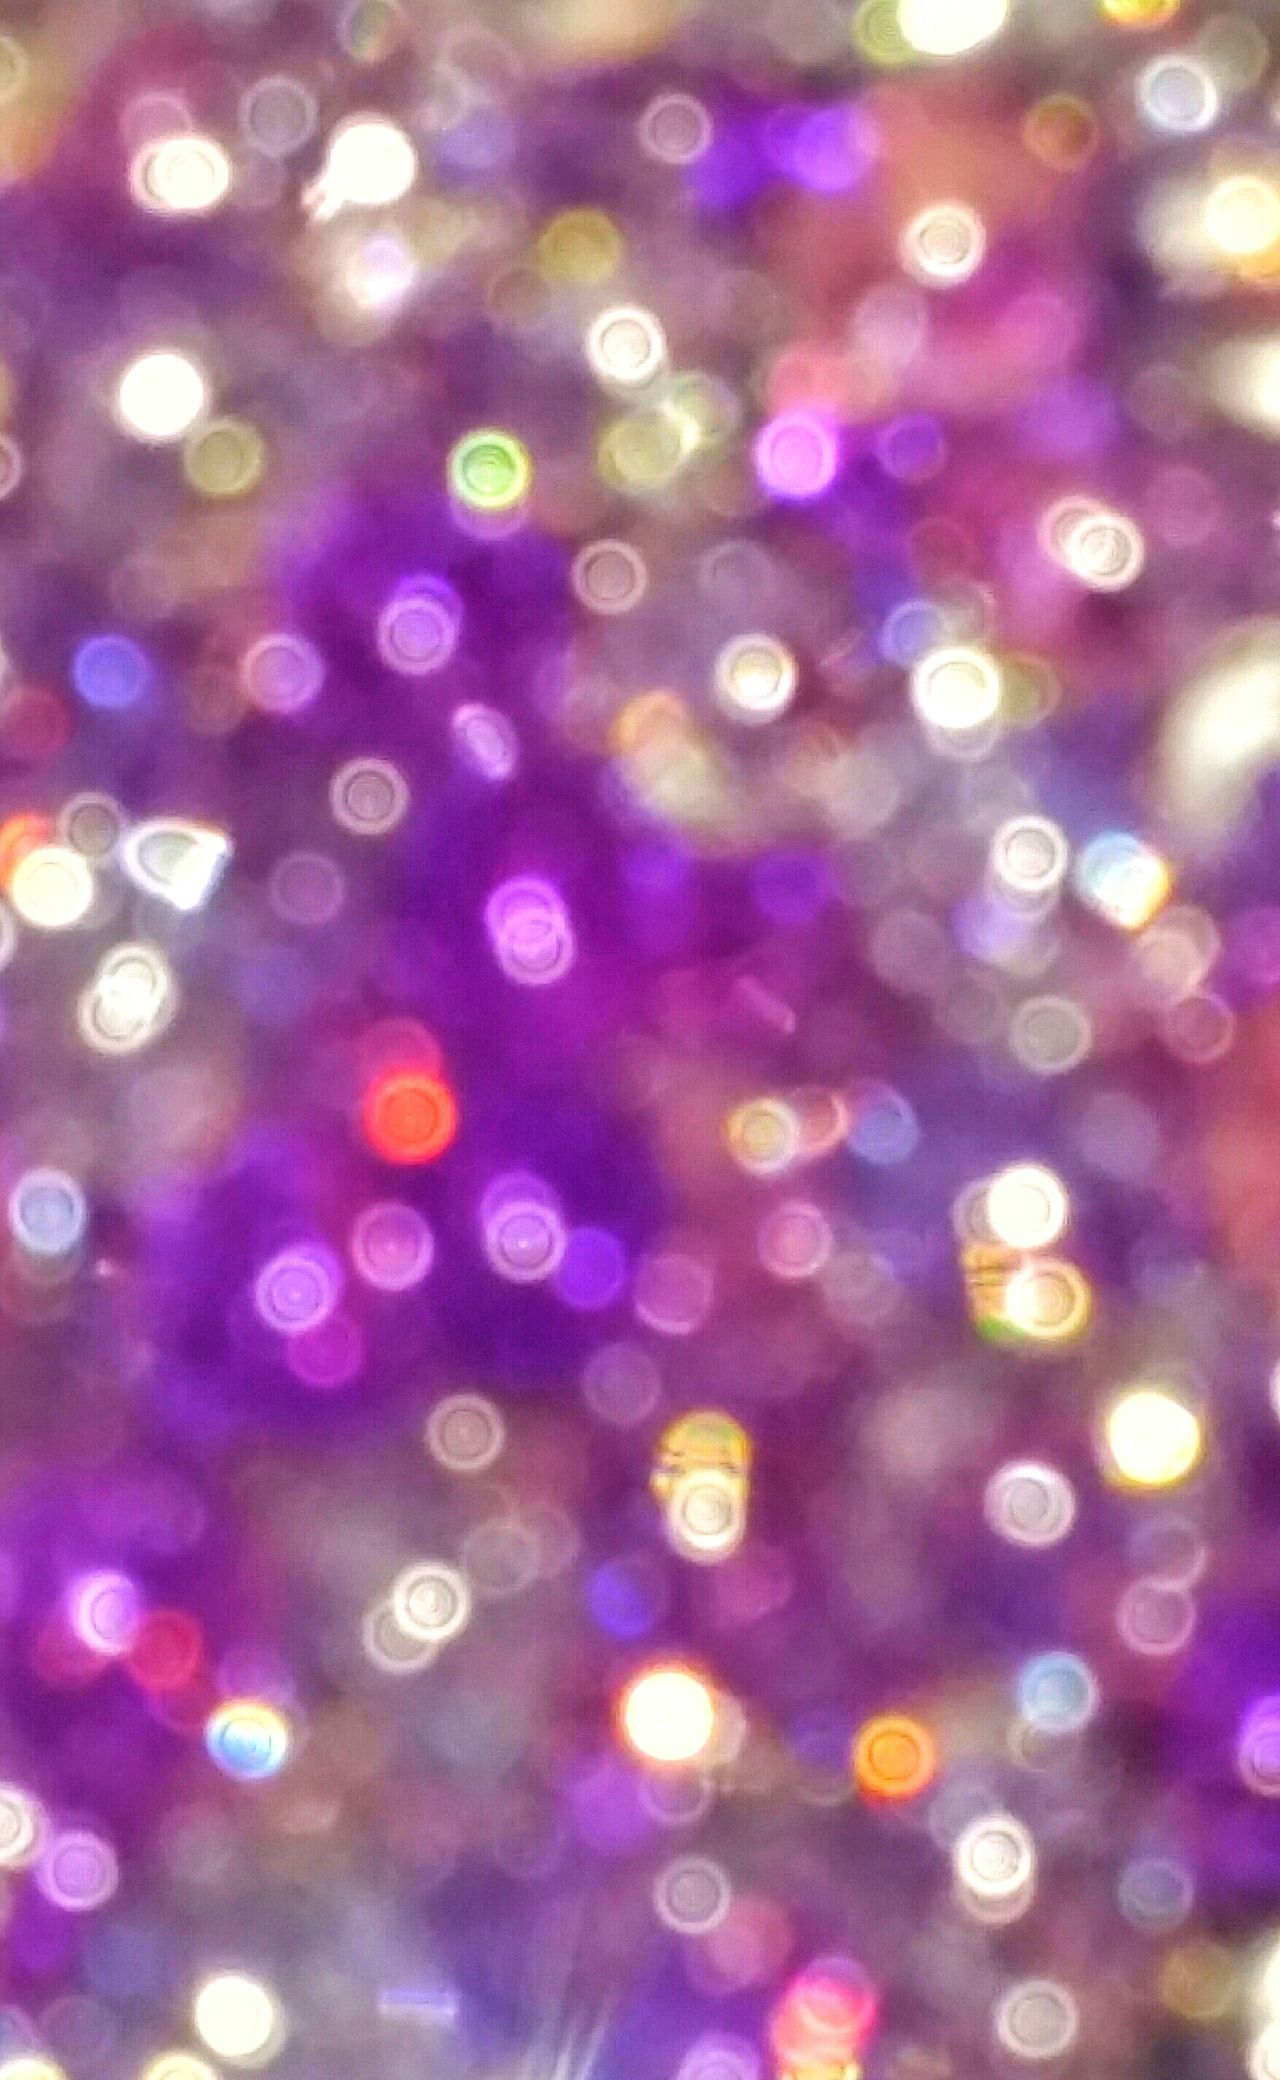 Blurred Background Circle Different Colors Shiny Objects Blurred Photography Still Life Still Life Photography Background Background Color Balls Circles Shiny Objects Bright Colors Abstract Abstractions In Colors Pretty Things Shapes And Colour Bright Colours Purple Bubbles Assorted Colors